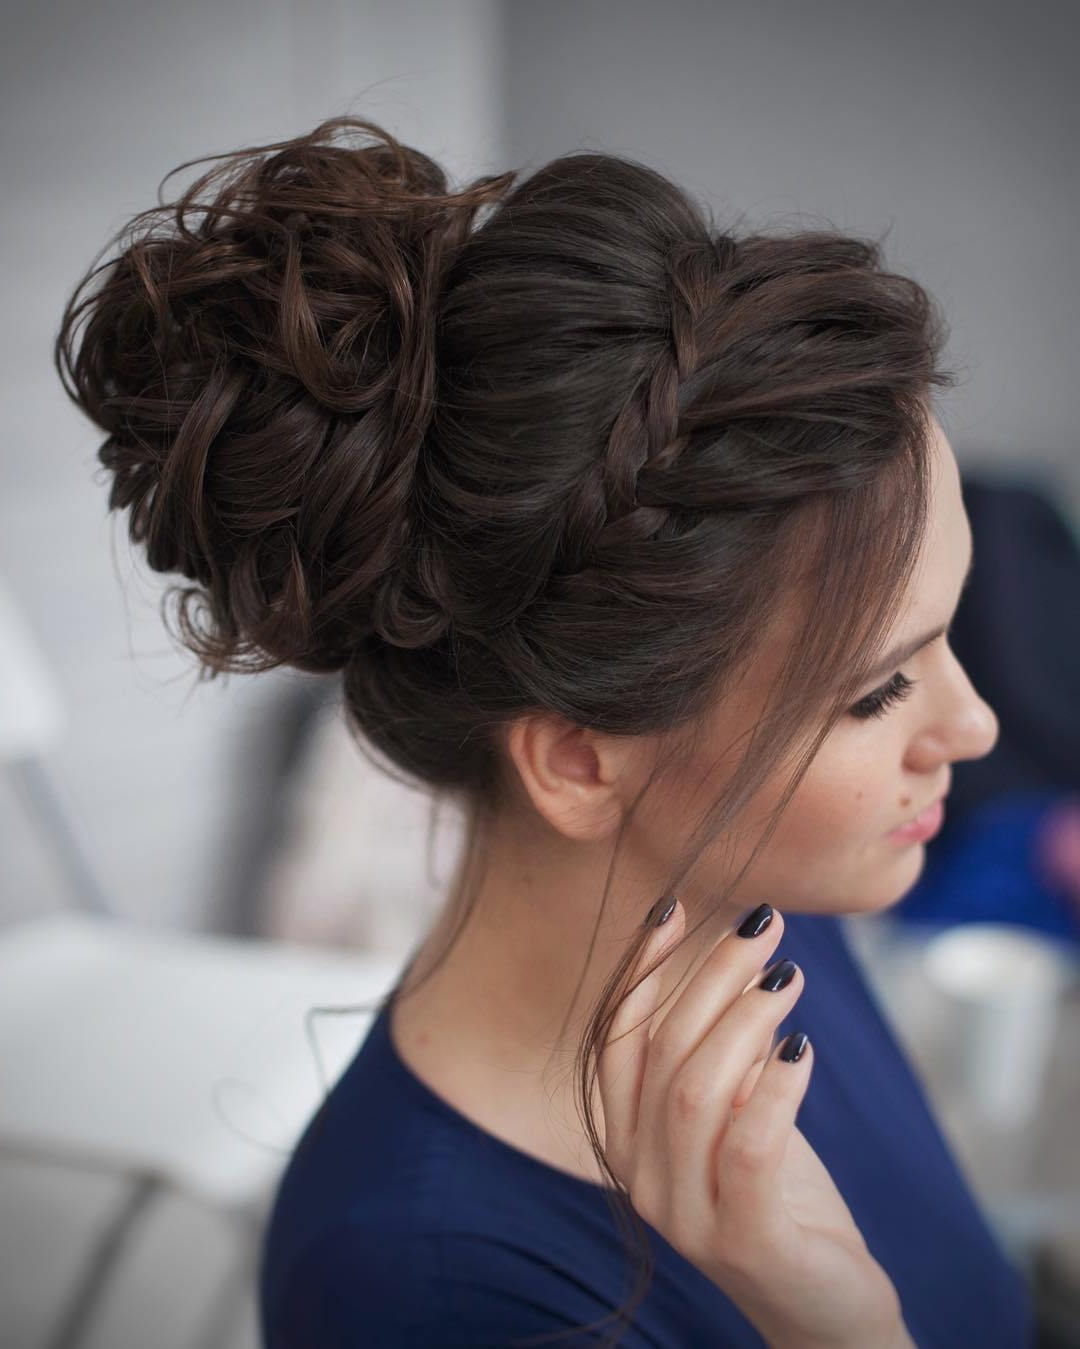 Prom Updos Archives – Trubridal Wedding Blog Throughout Favorite Upside Down Braid And Bun Prom Hairstyles (View 18 of 20)